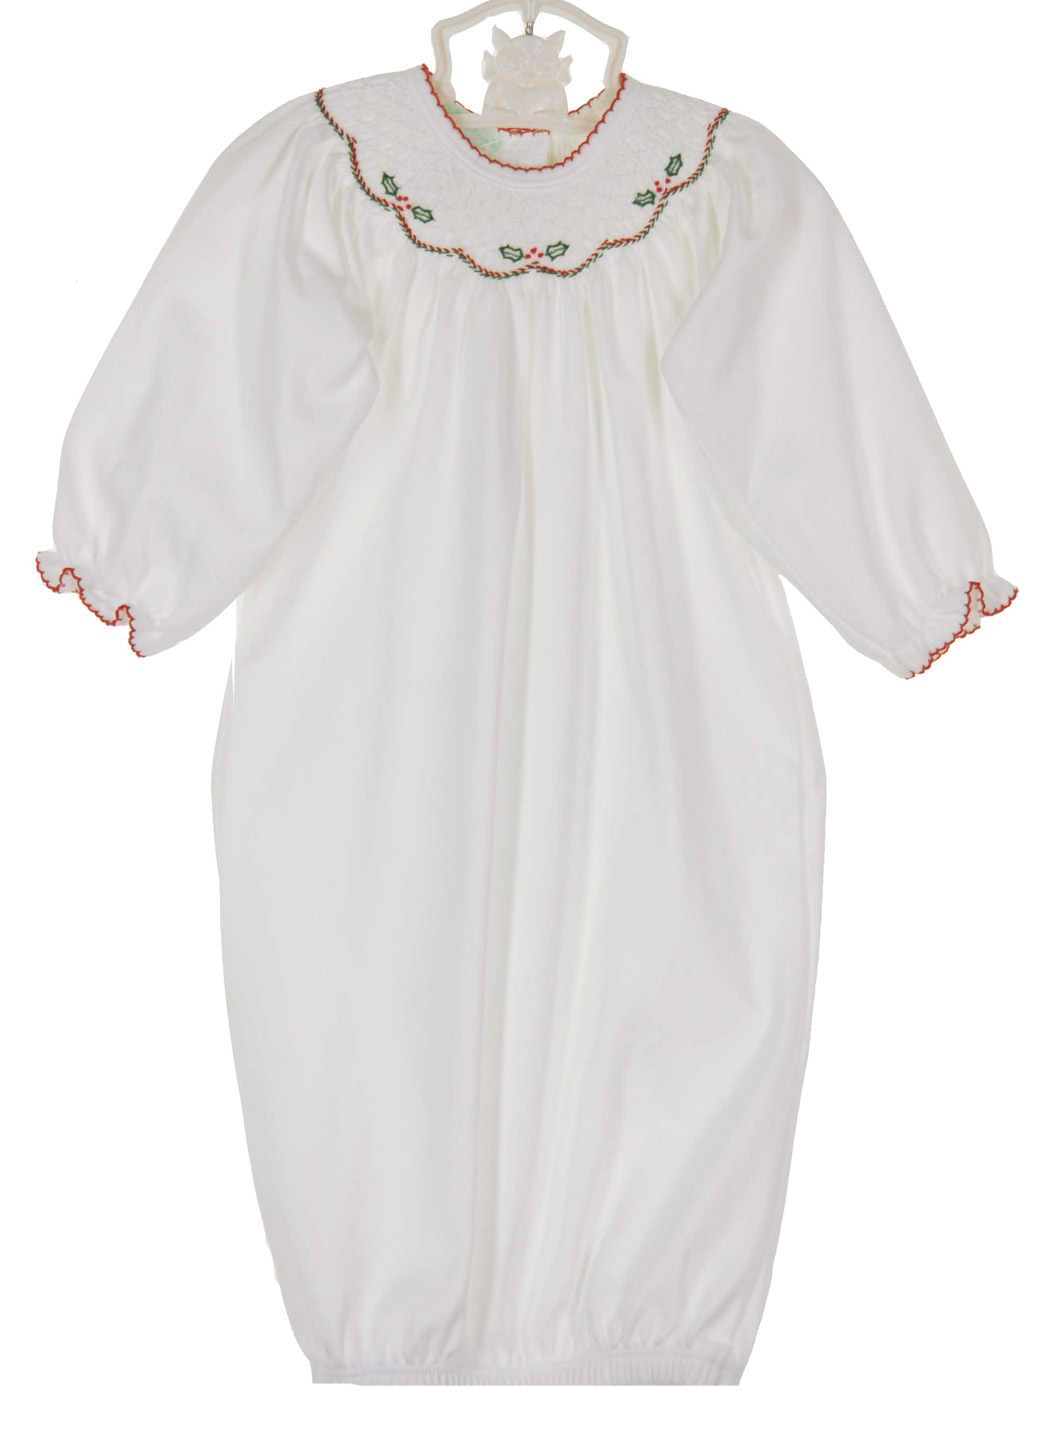 Baby Threads white pima cotton smocked gown with holly embroidery ...